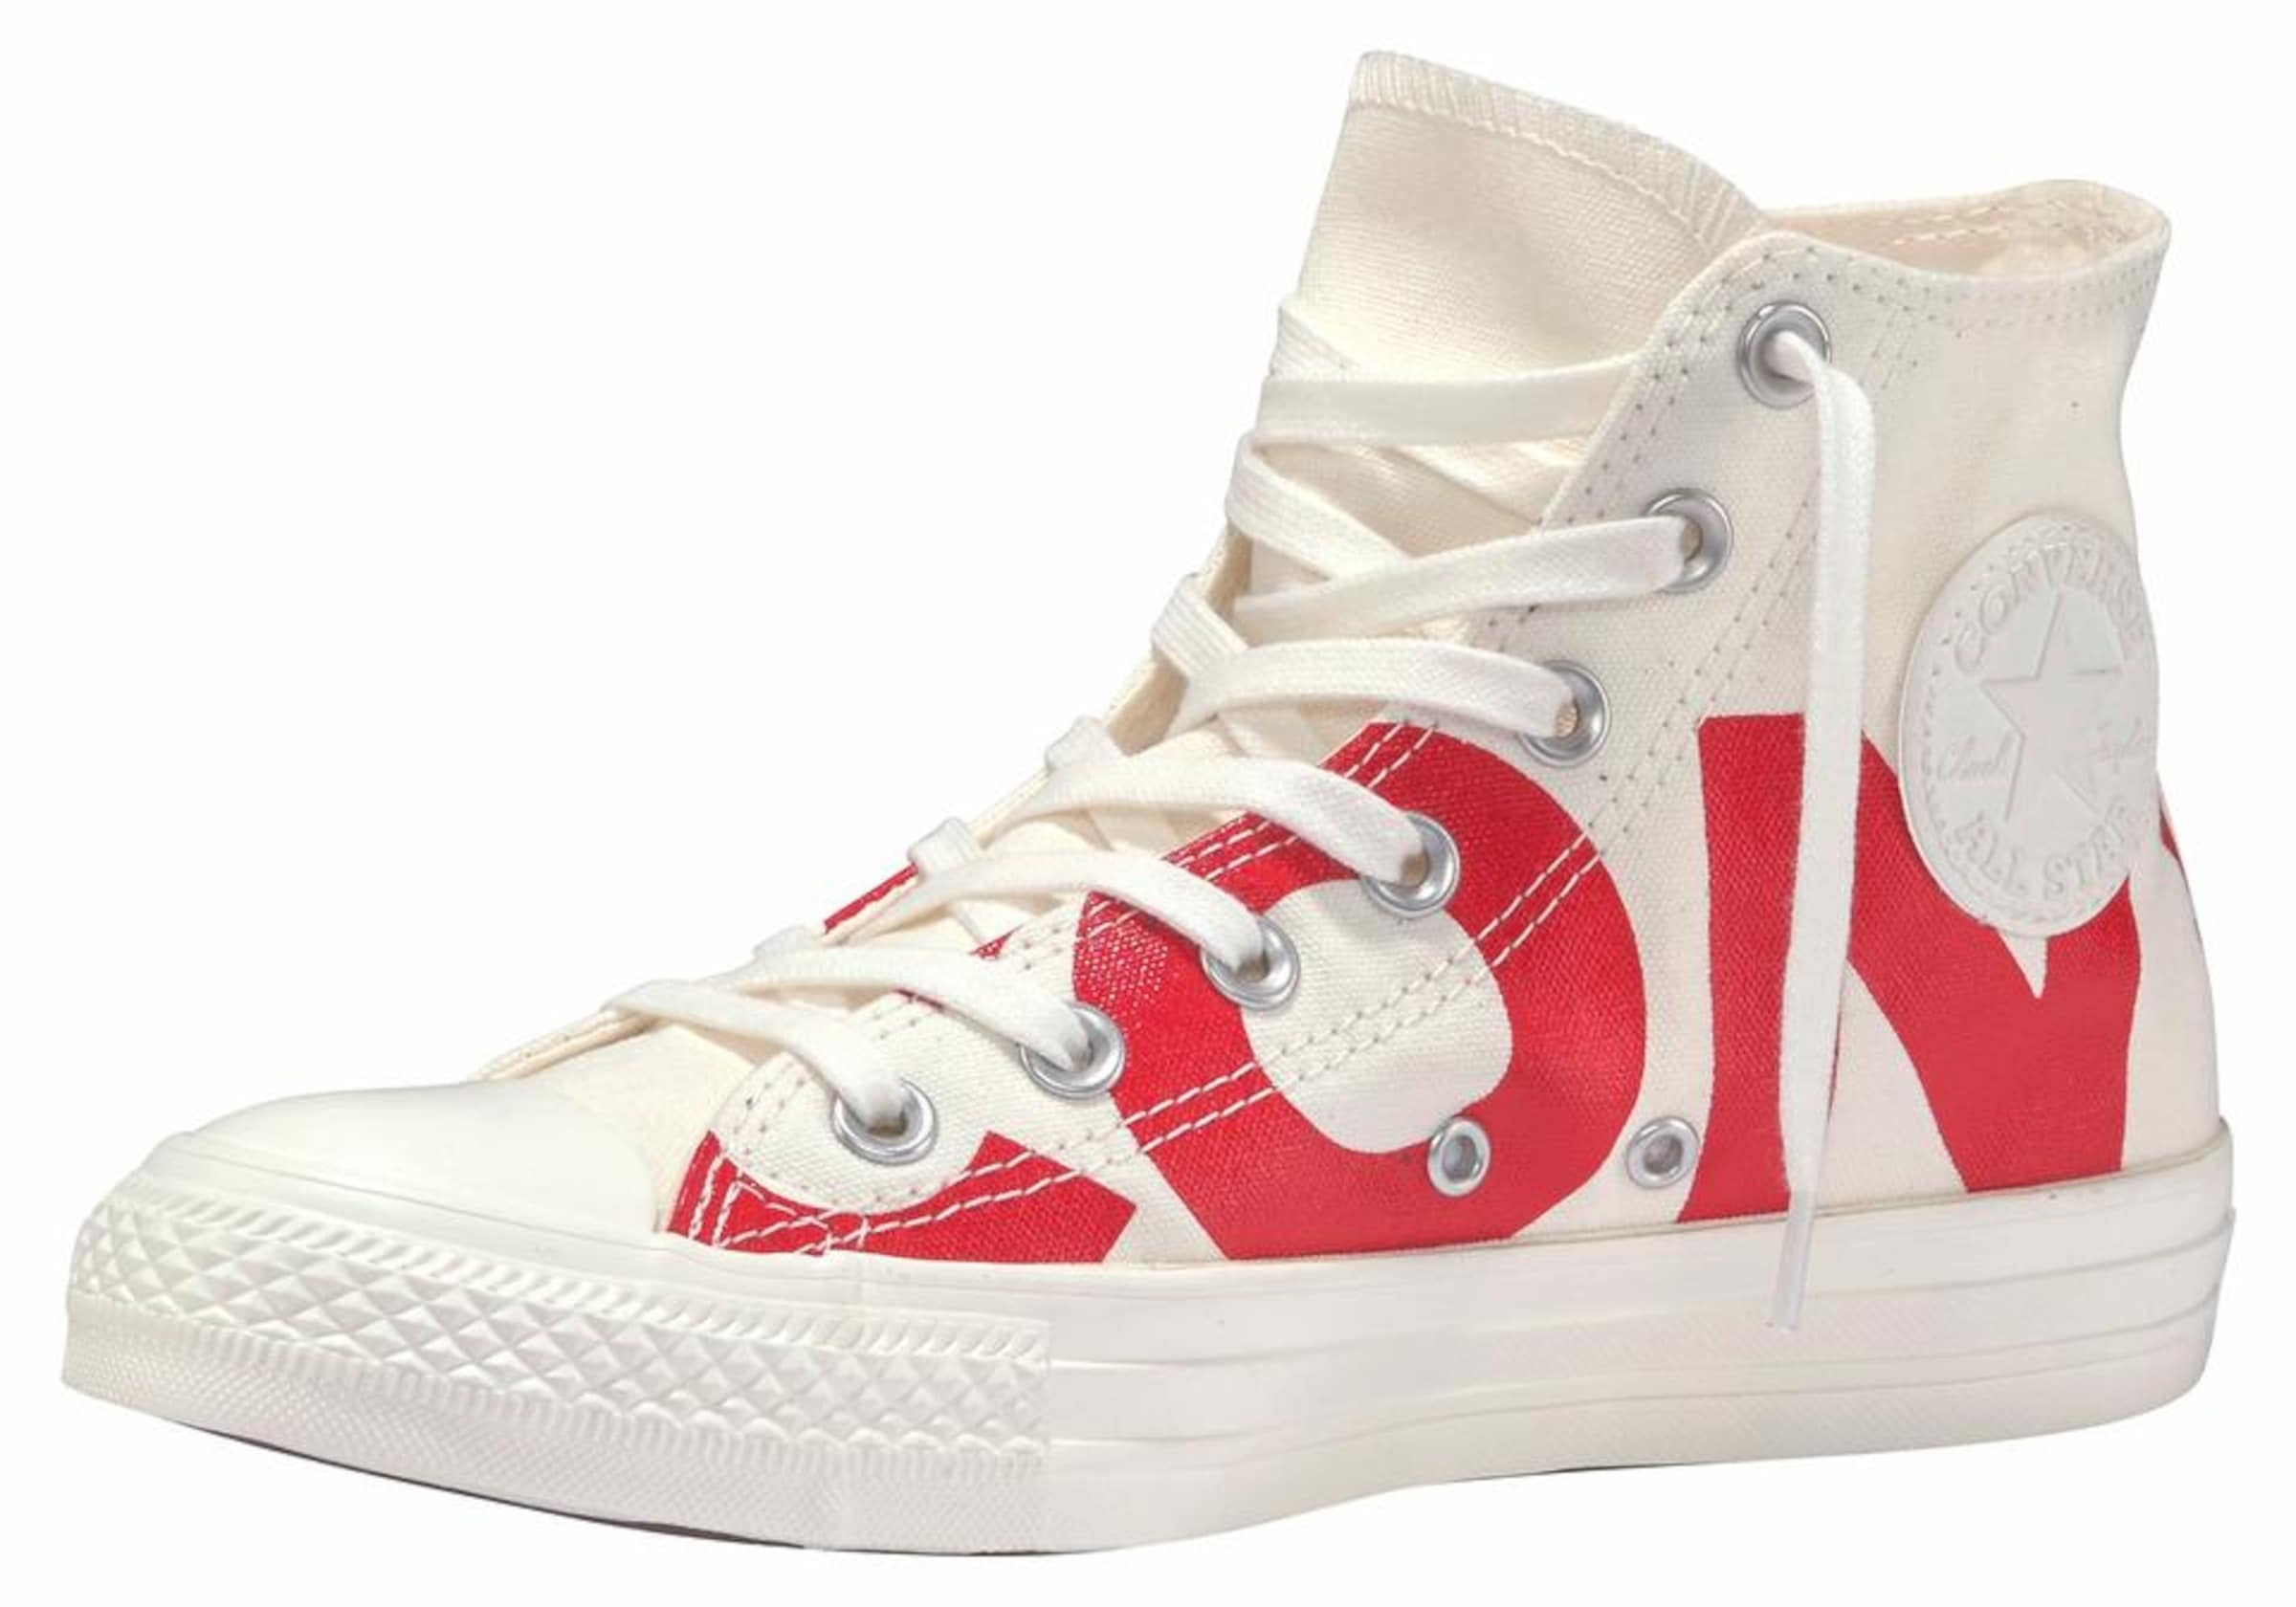 Baskets Converse Hoog 'all Star Chuck Taylor' Rood / Wolwit 8fuVlEPLg